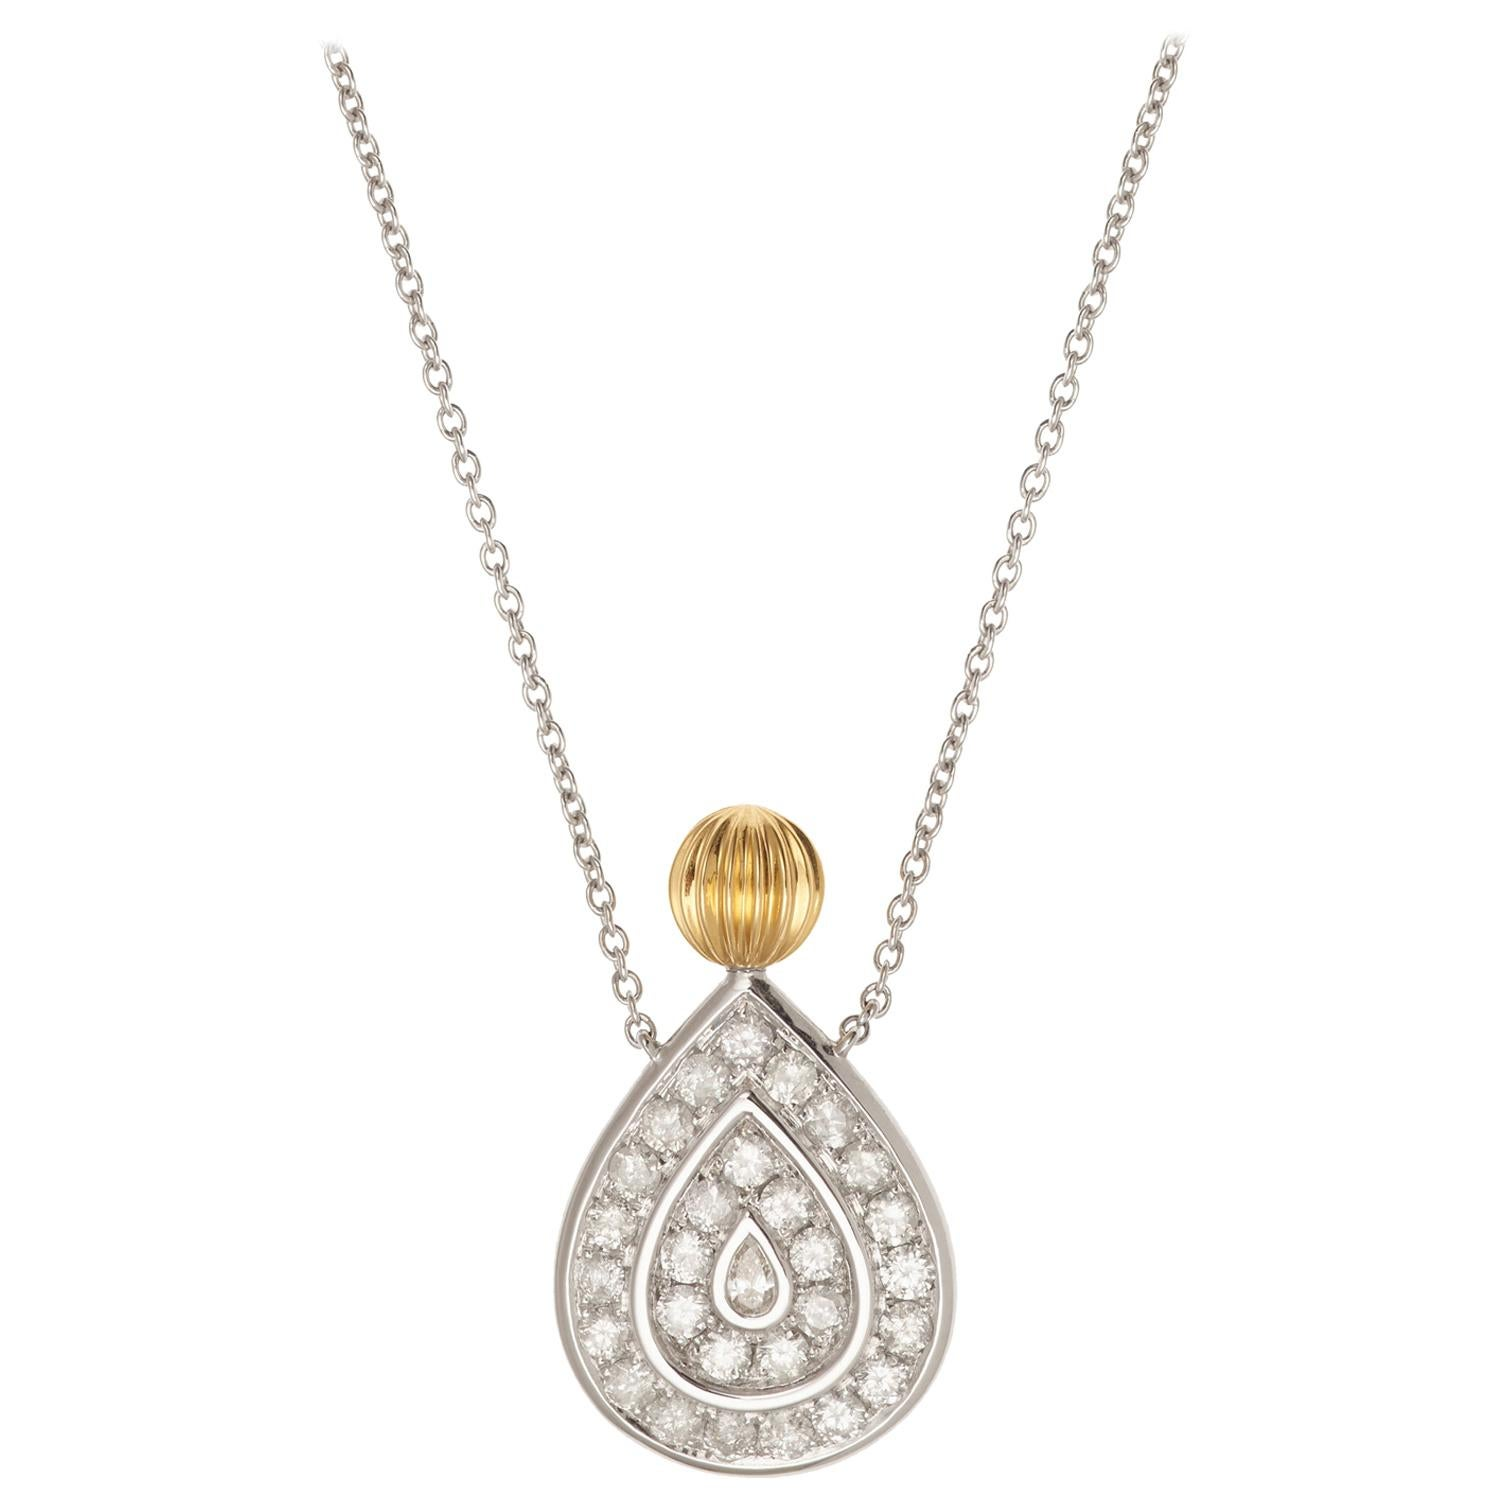 Yvonne Leon's Necklace in 18K Yellow and White Gold and Diamonds